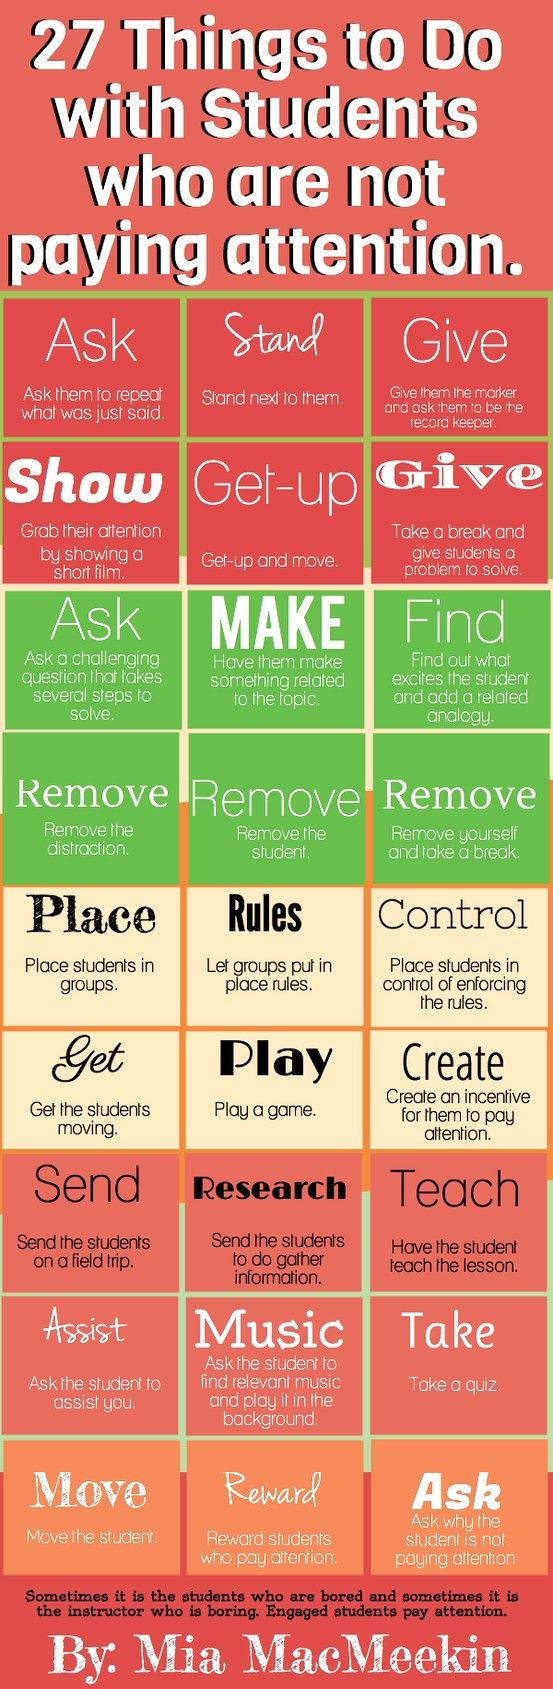 27 Things to do with students who are not paying attention #infografia #infographic #education